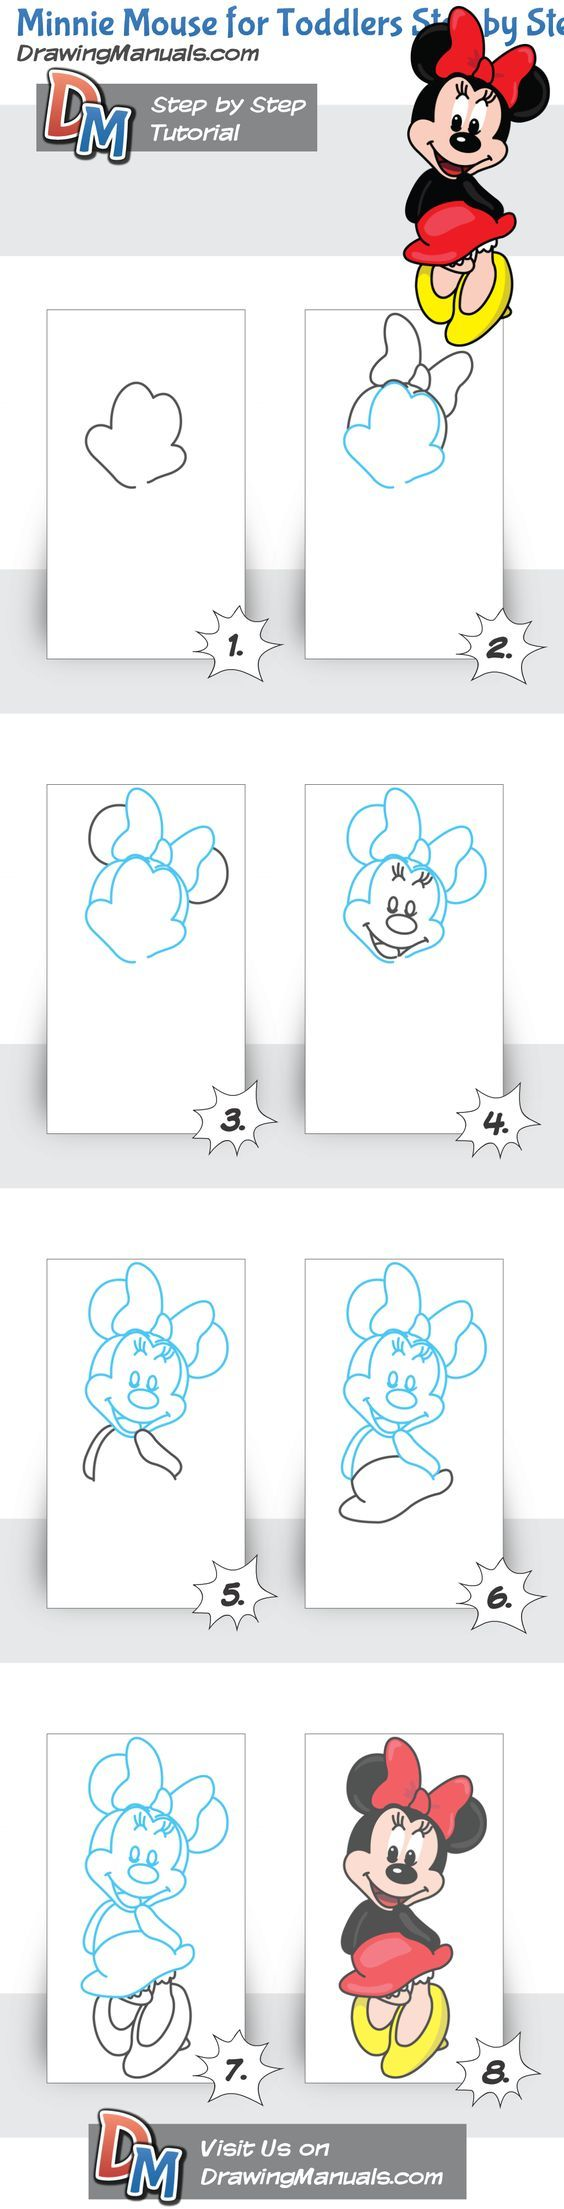 How to Draw Minnie Mouse Step-by-Step: